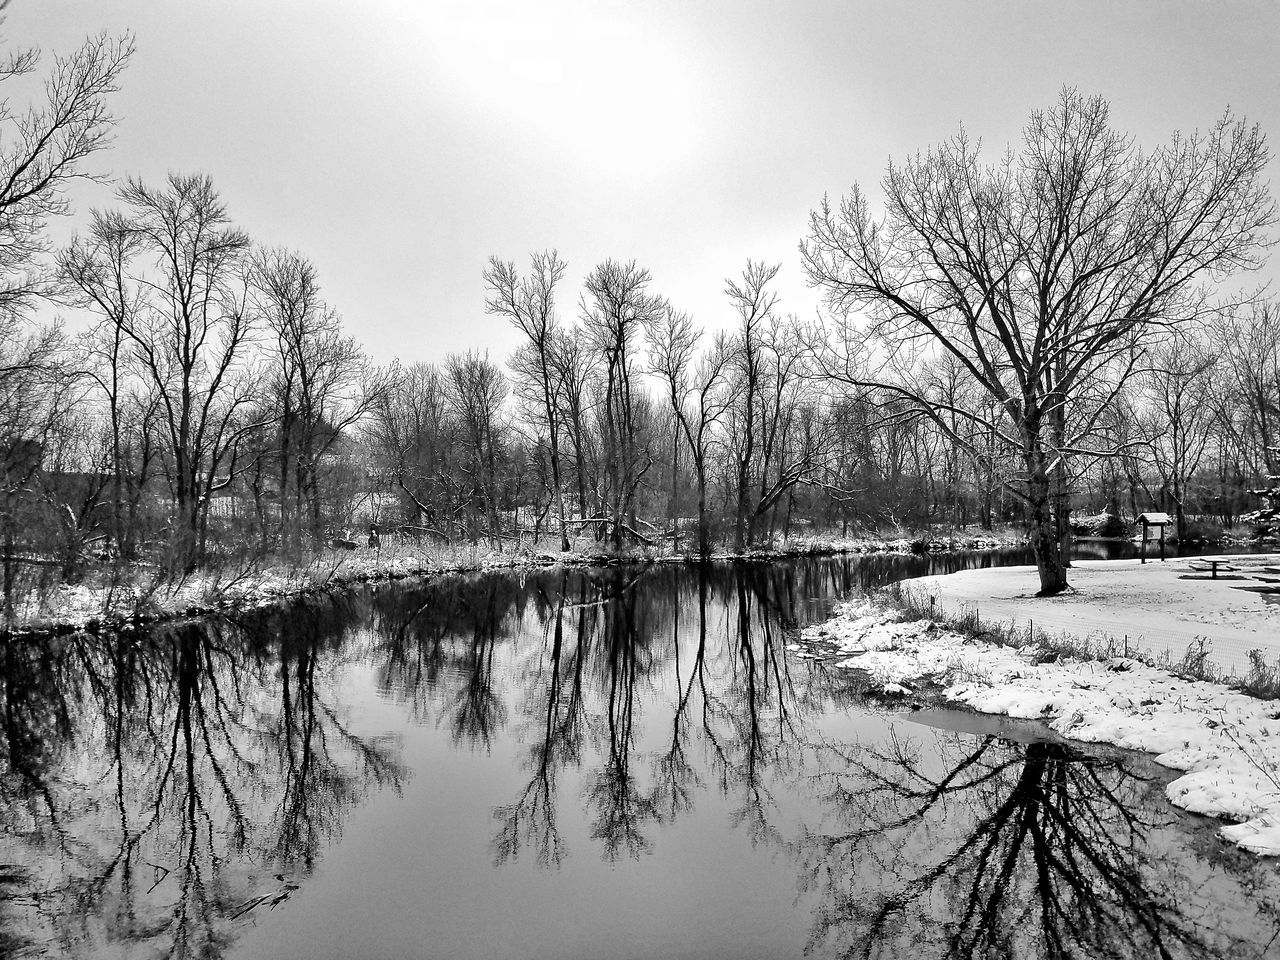 bare tree, winter, tree, nature, cold temperature, snow, reflection, tranquility, tranquil scene, beauty in nature, scenics, day, outdoors, lake, branch, water, no people, sky, landscape